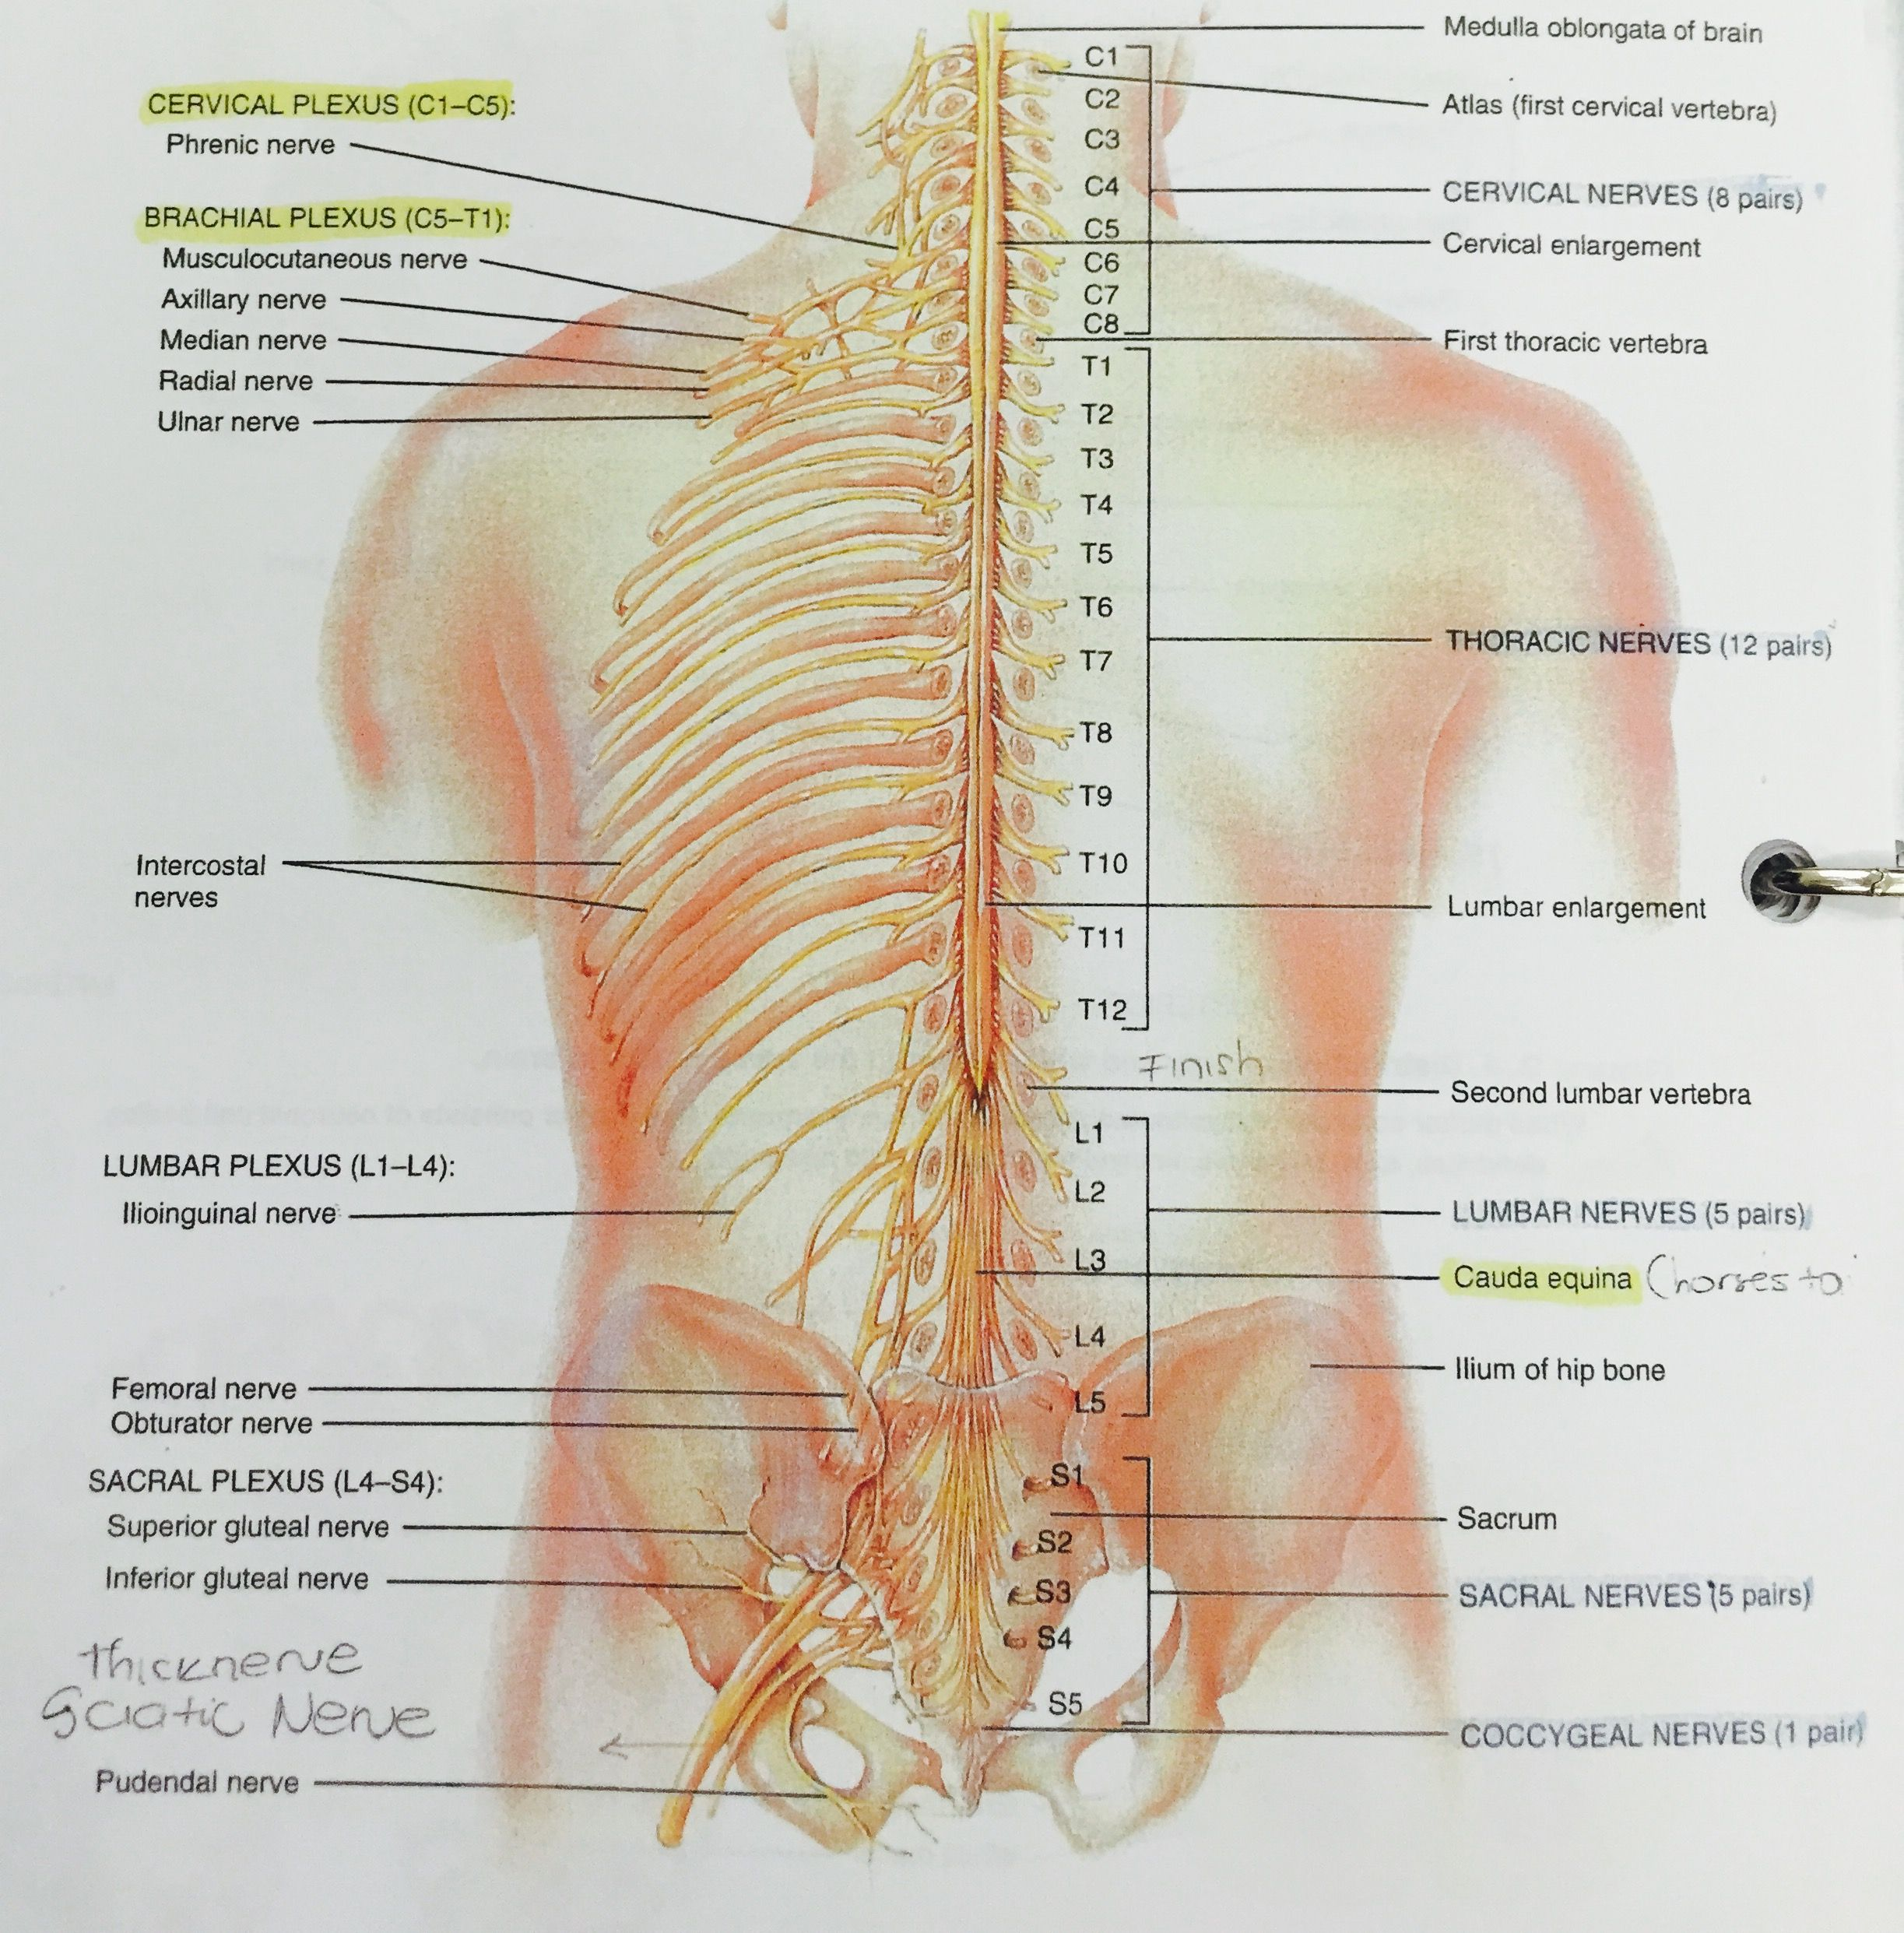 Posterior view of entire spinal cord and portions of spinal nerves ...